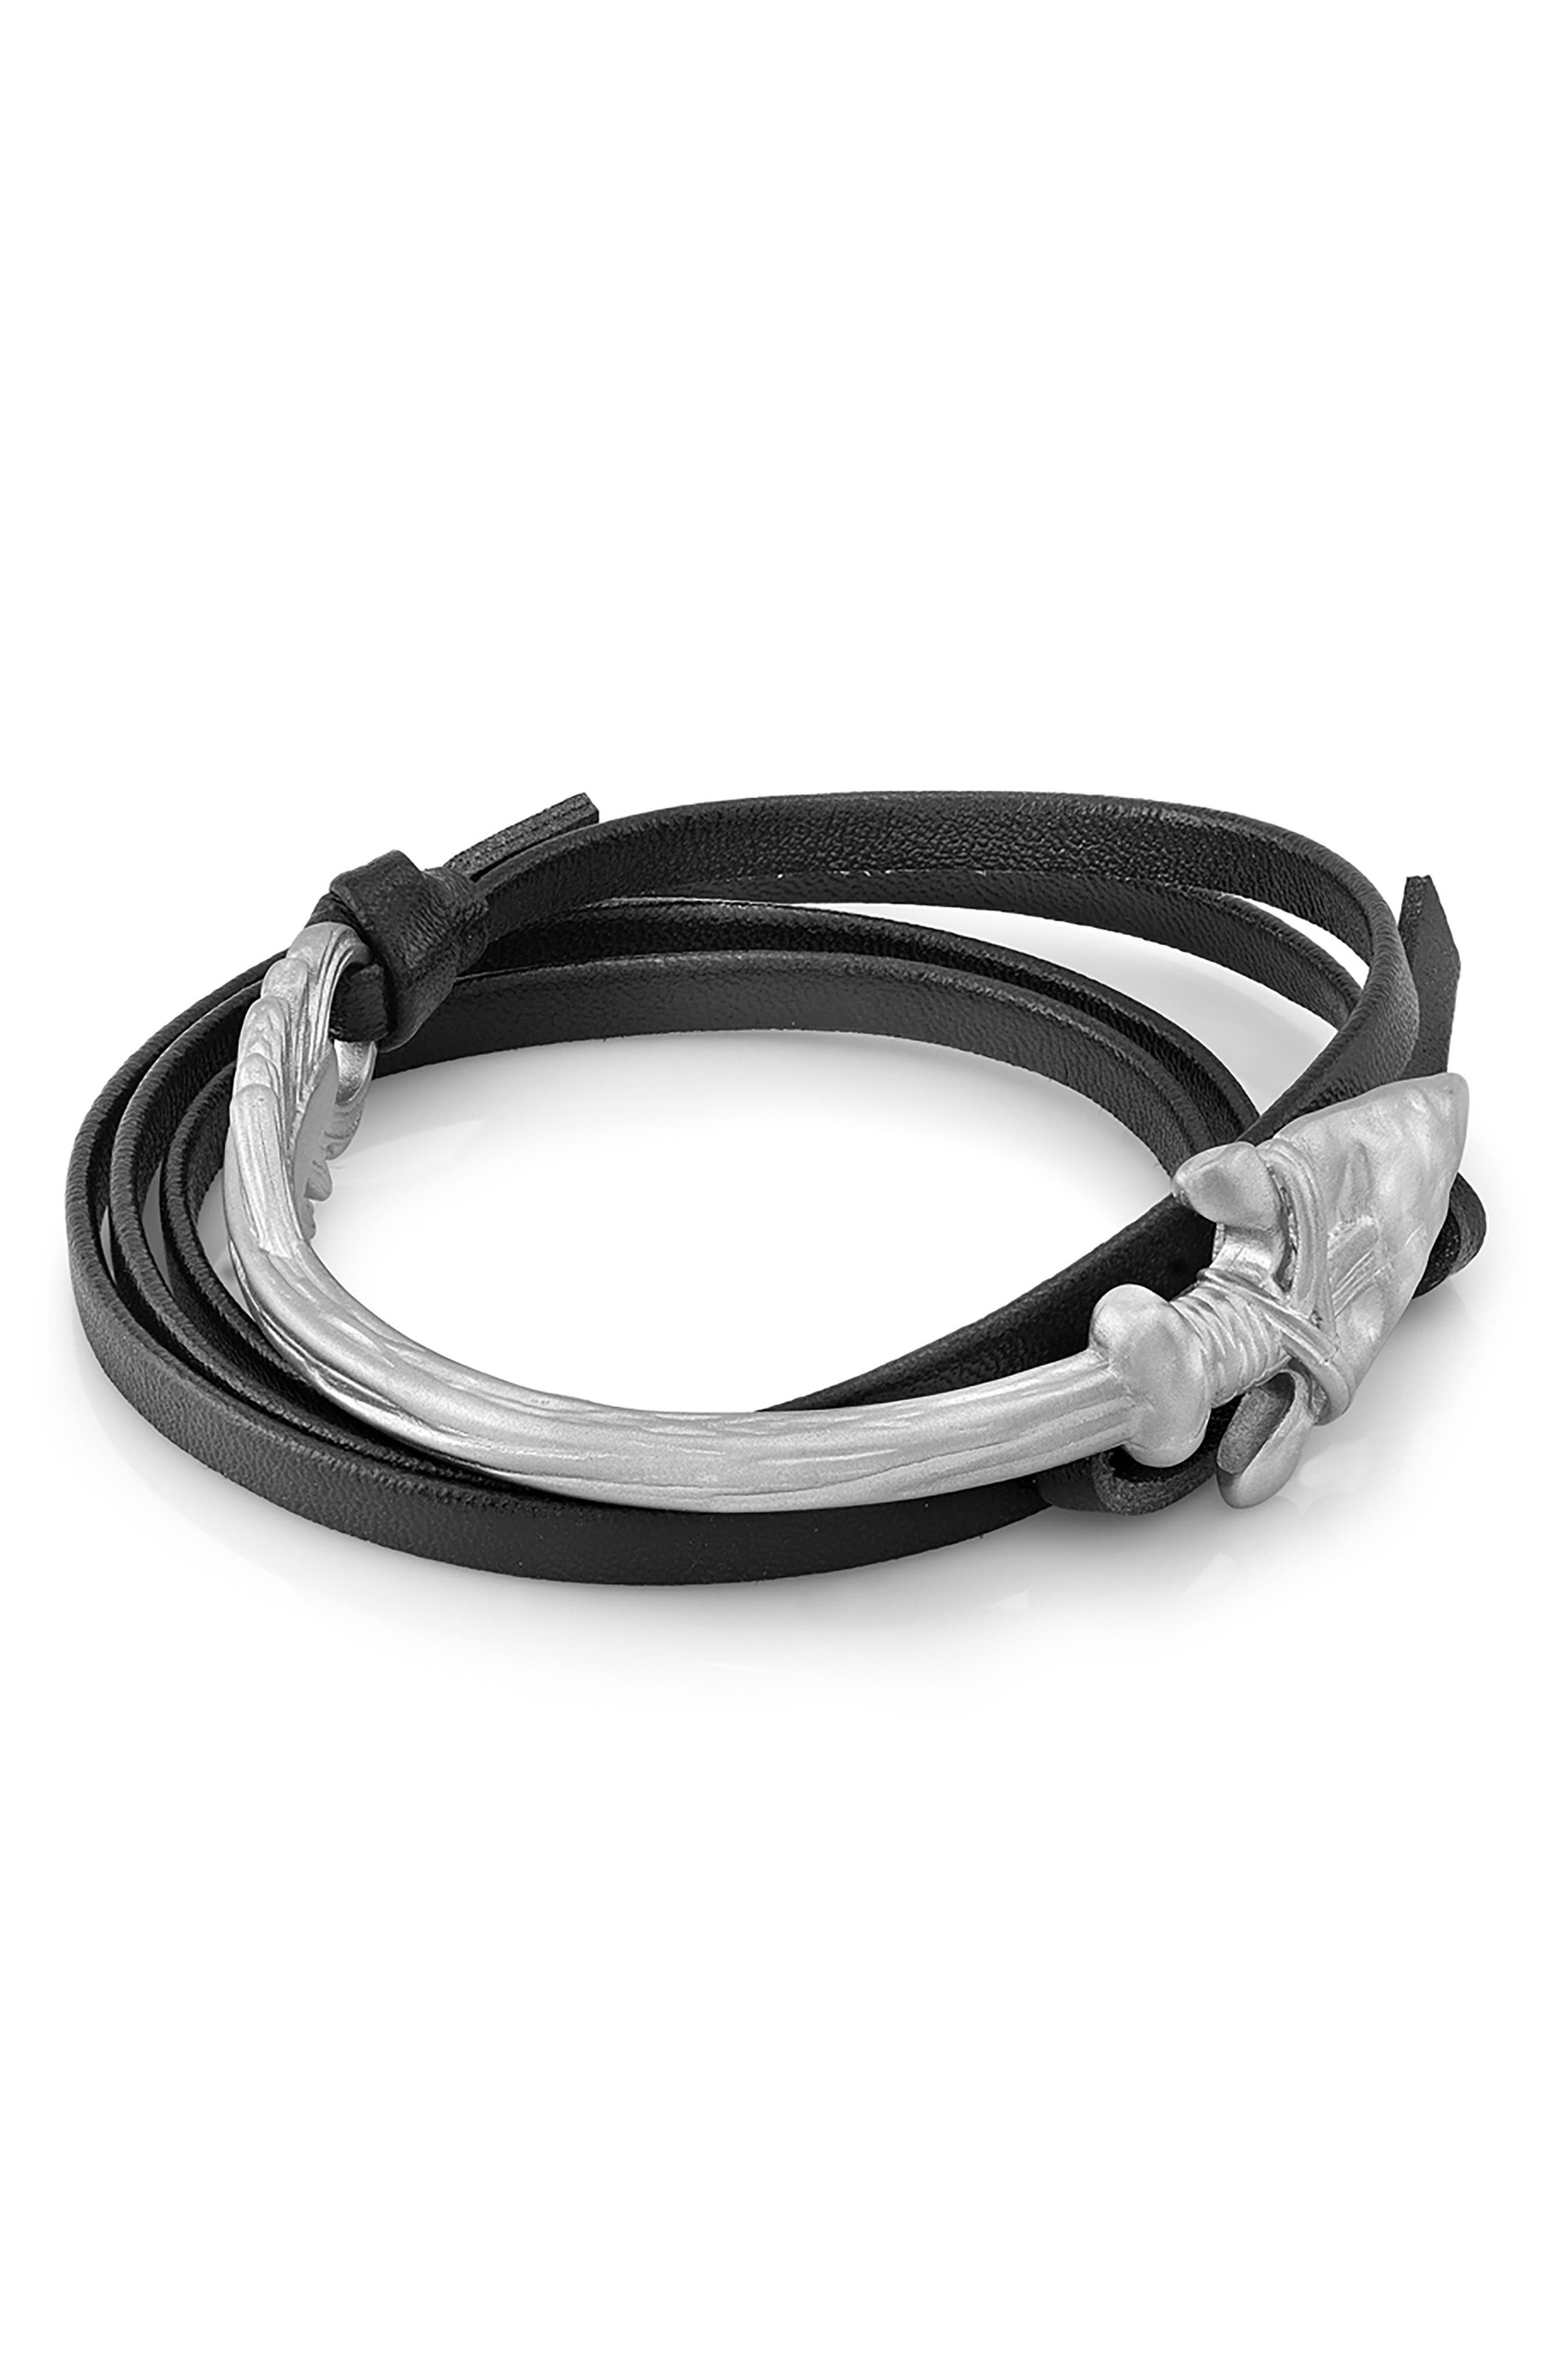 Arrow Leather Wrap Bracelet,                         Main,                         color, Silver/ Black